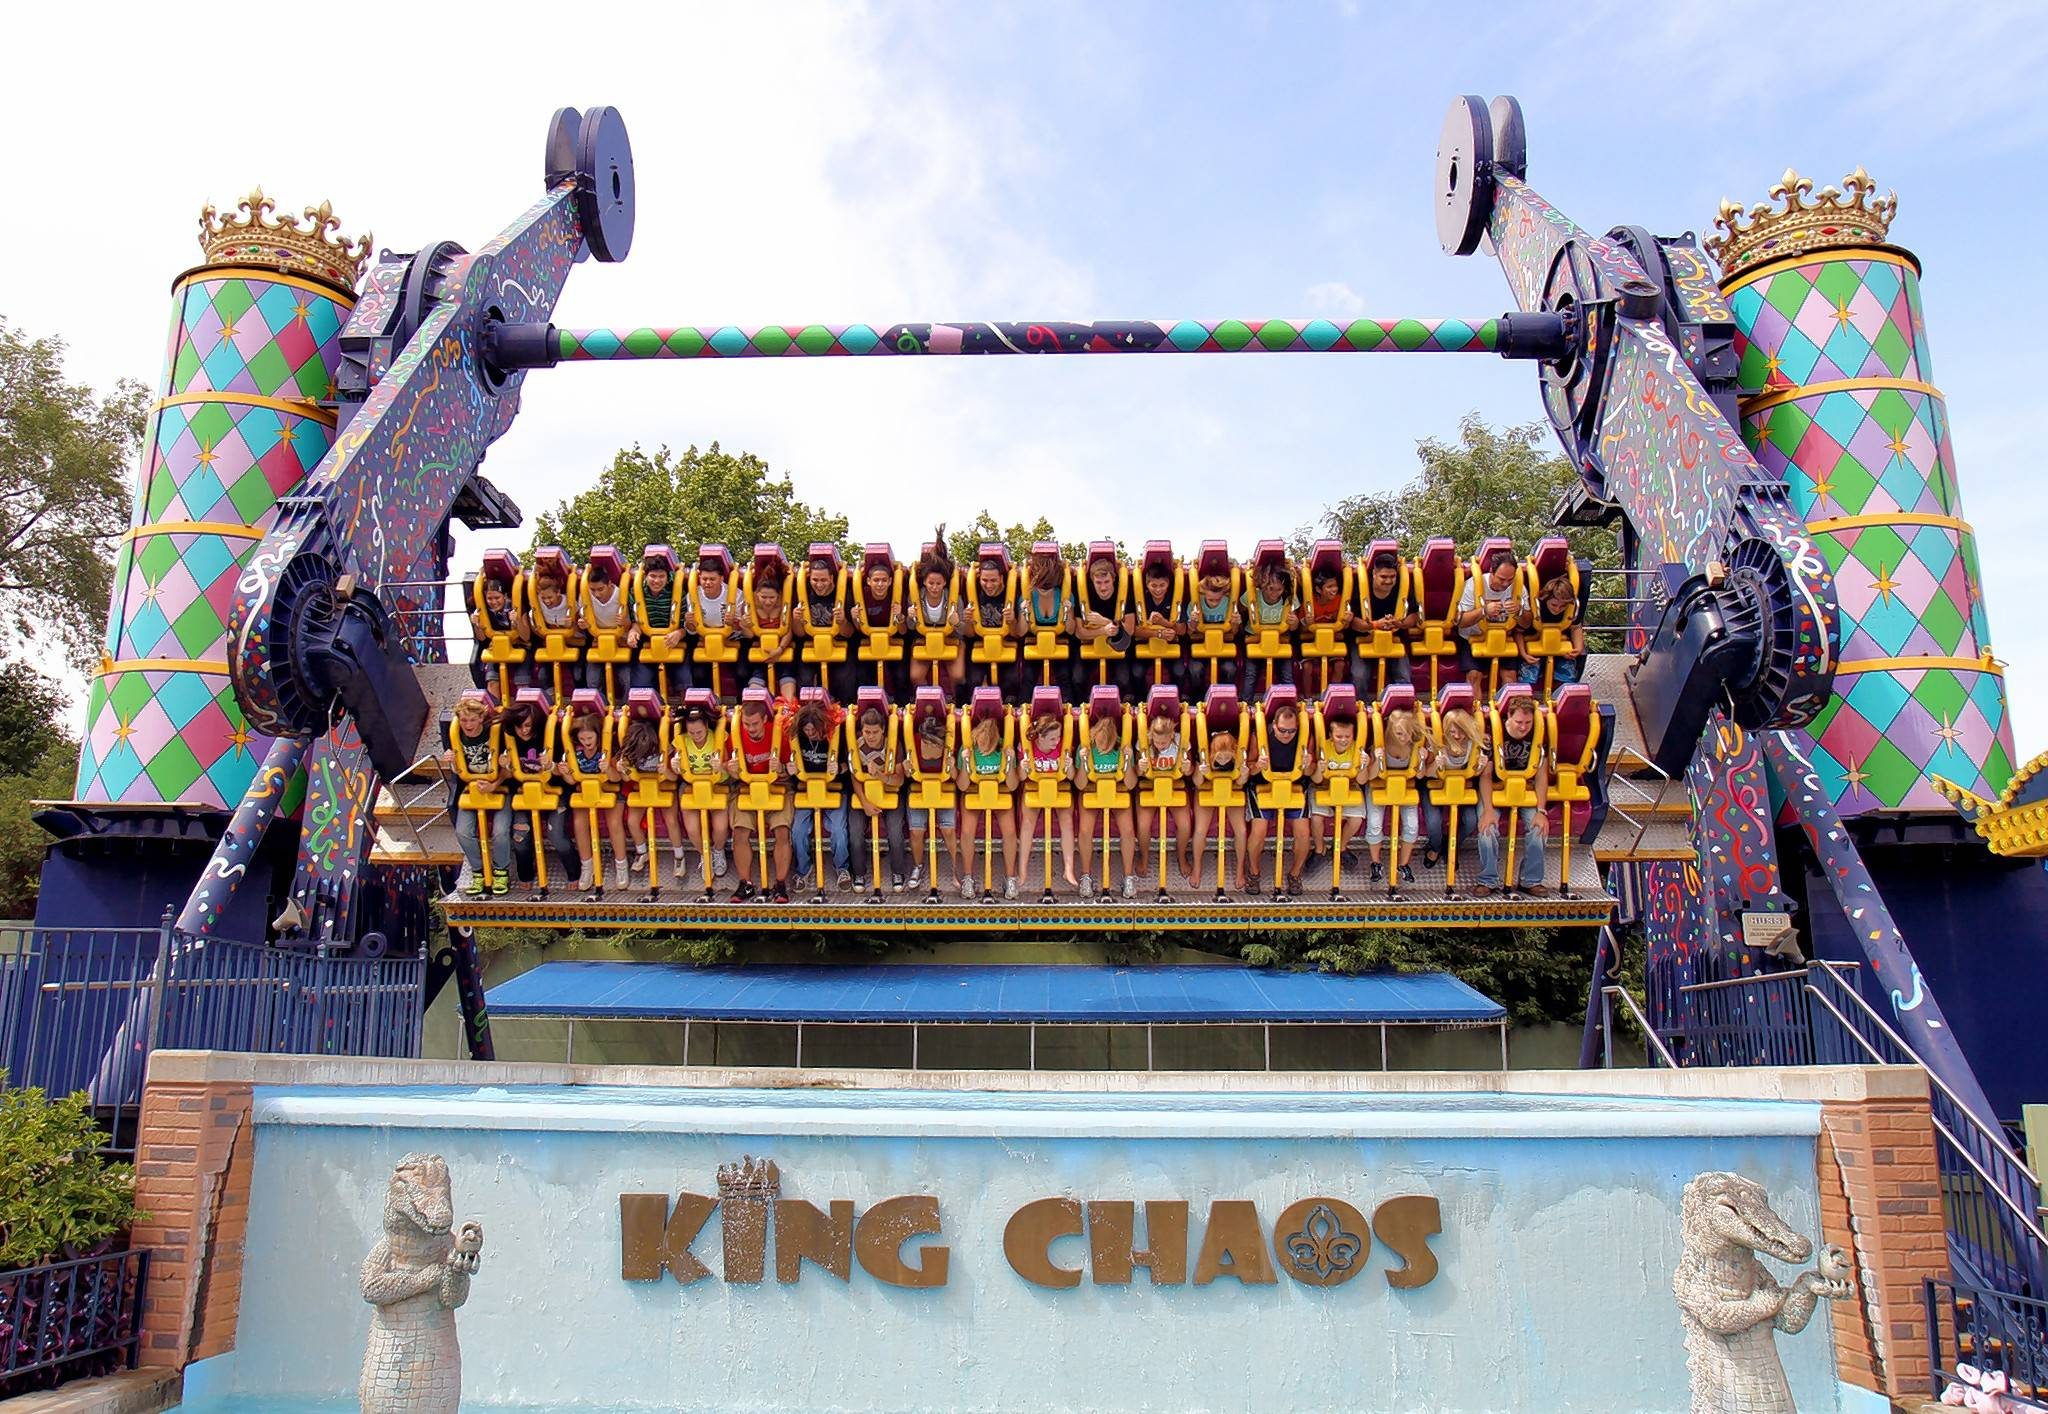 Courtesy of Six Flags Entertainment Corp.Riders roll and rotate on King Chaos.